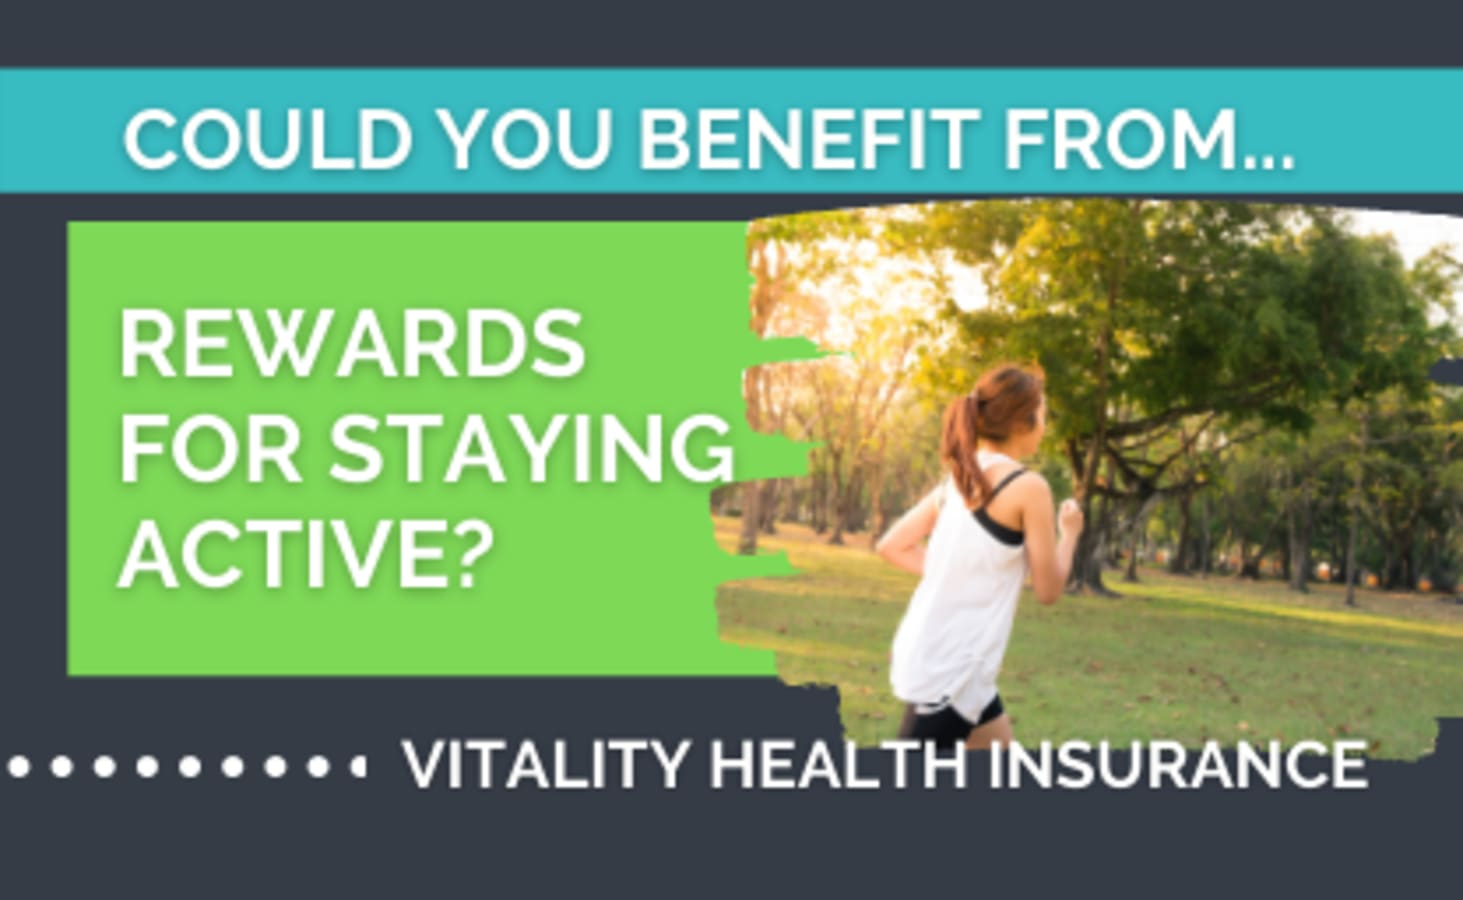 image More than just health insurance